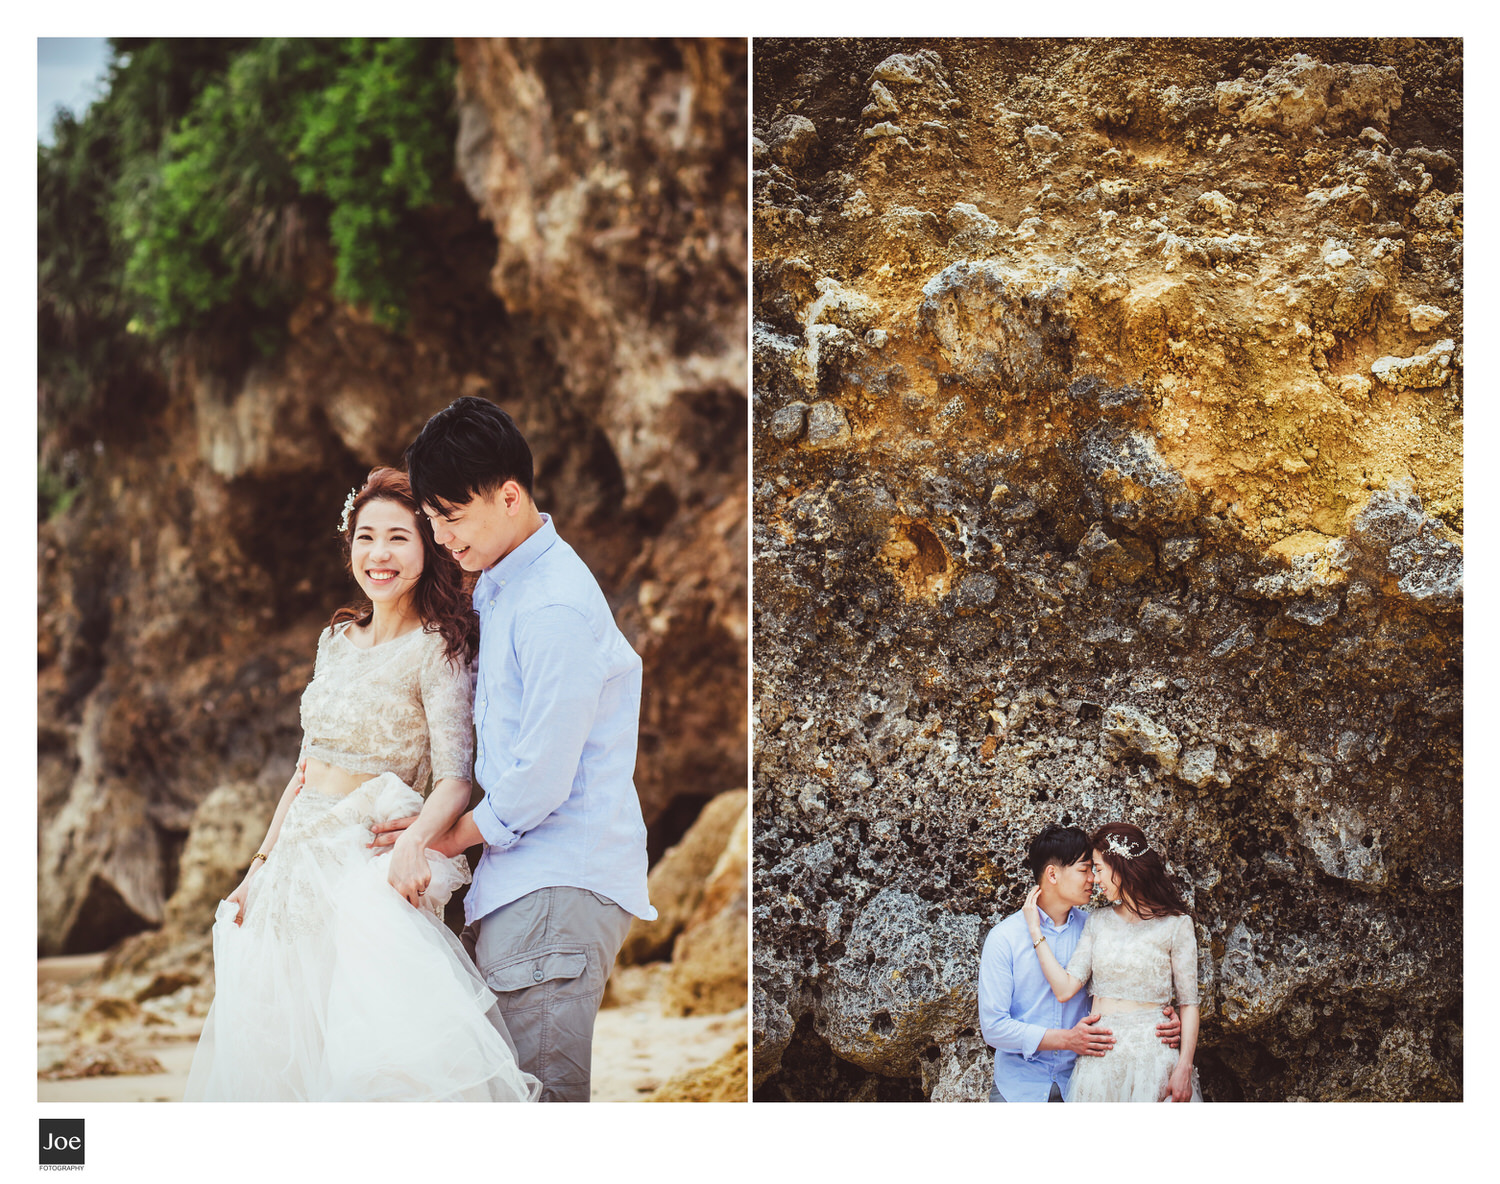 joe-fotography-12-bali-melasti-beach-pre-wedding-amelie.jpg